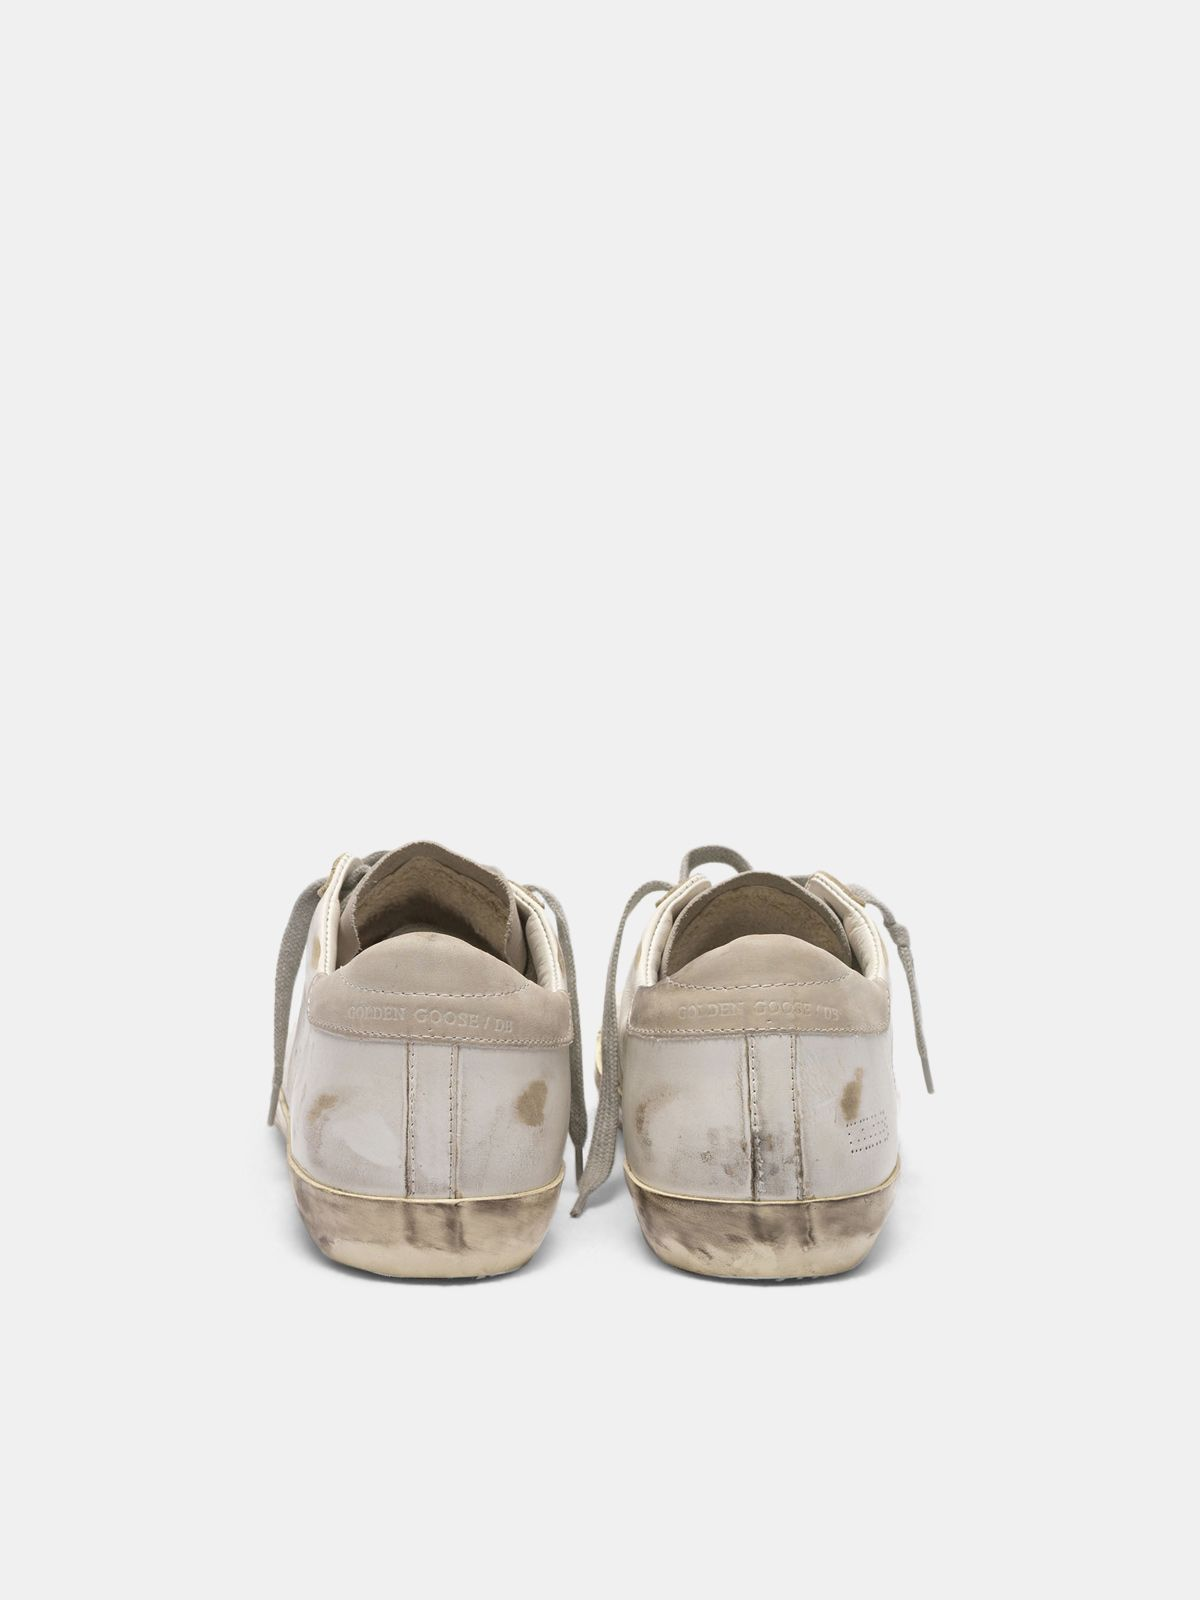 Golden Goose - Super-Star sneakers in suede leather with perforated star in